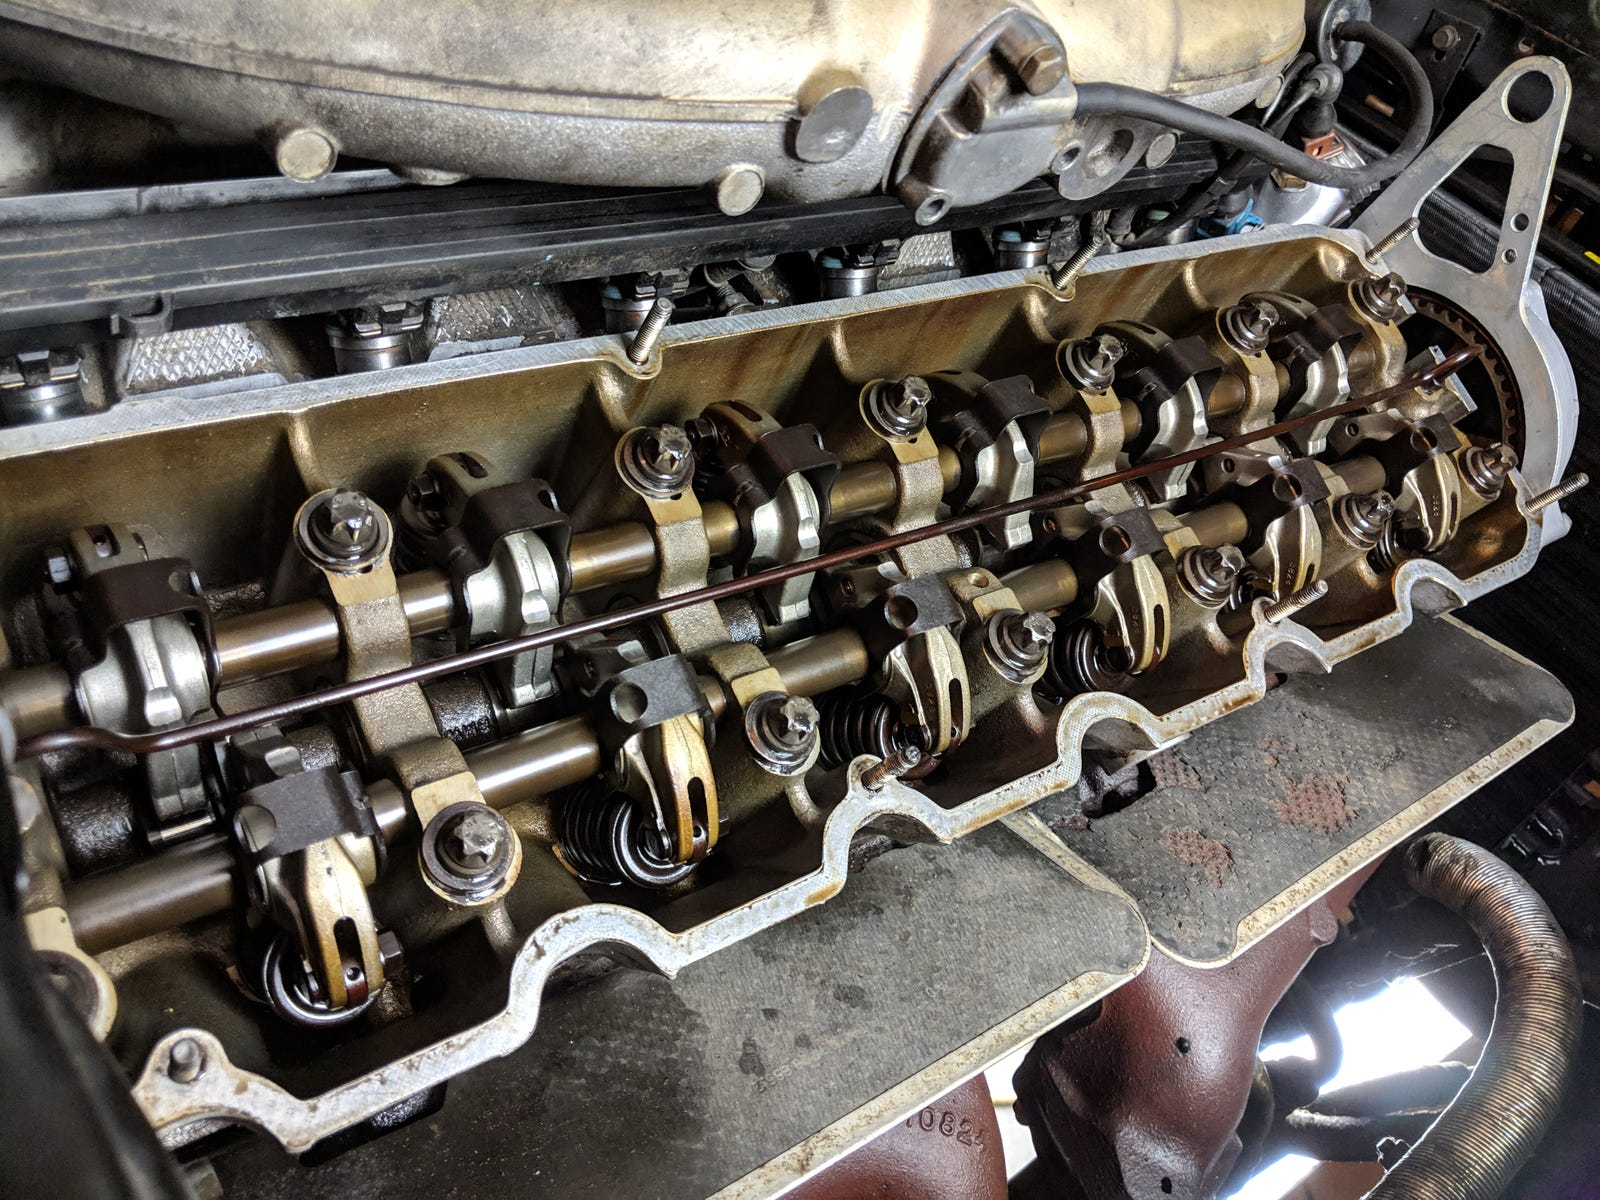 Valves adjusted. That's looking clean for an engine with over 230,000 miles on it.